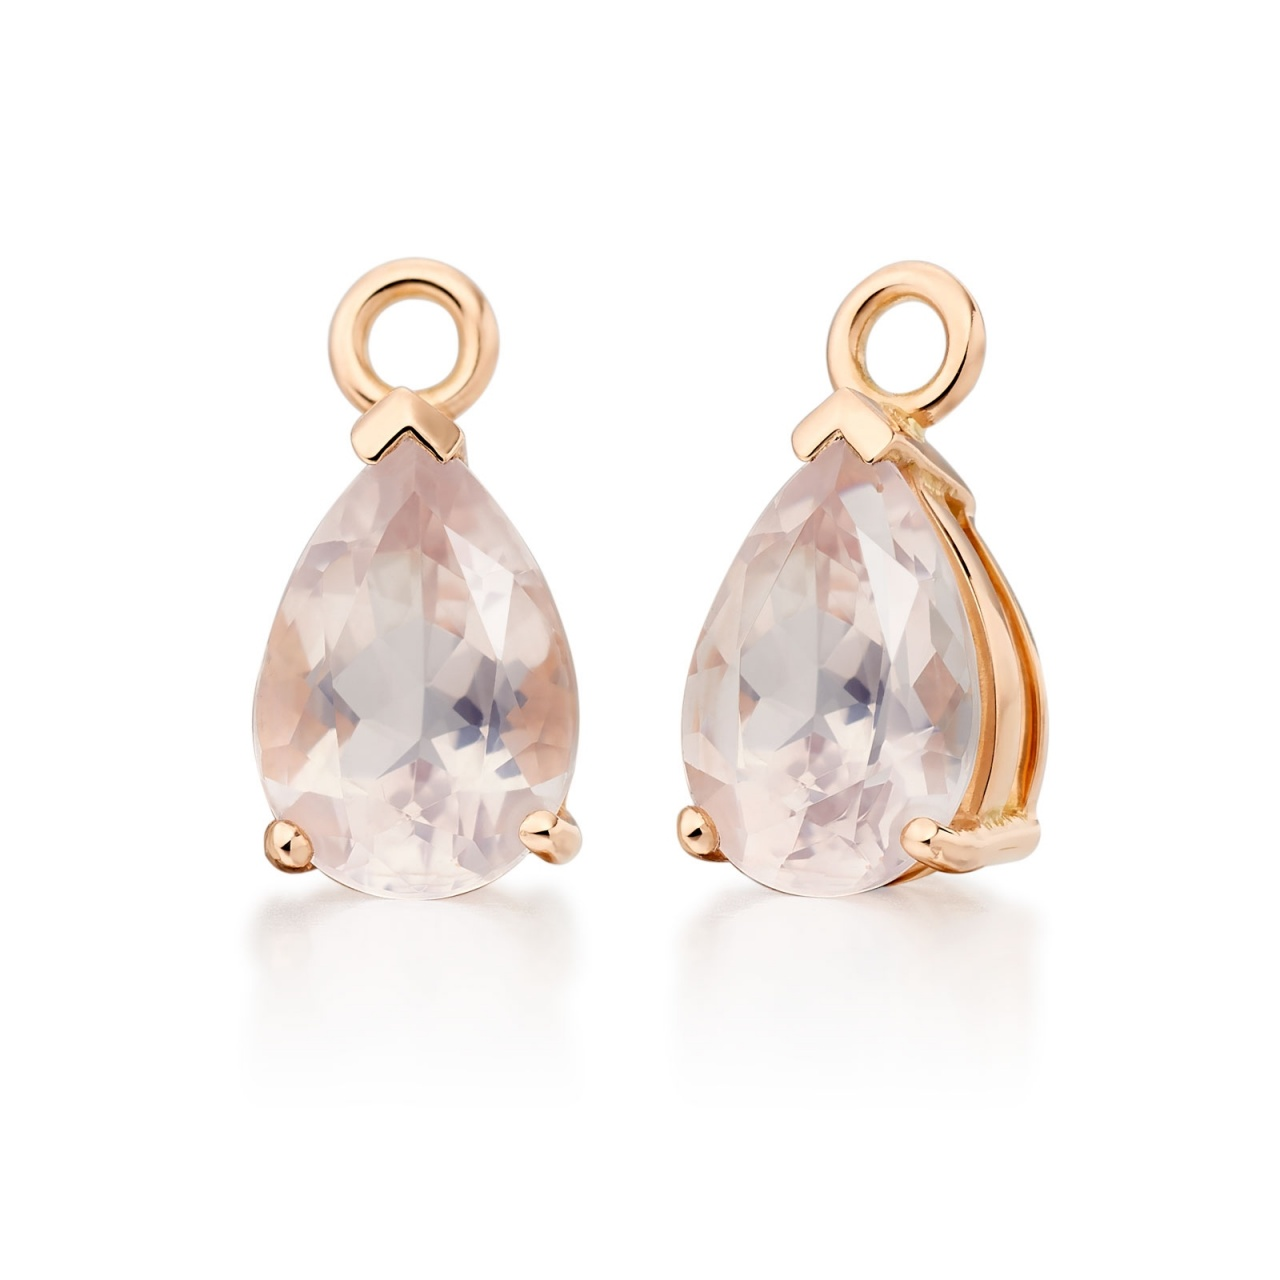 Classic Leverbacks with Mythologie Rose Quartz Drops in Rose Gold-EARQRG1115-1